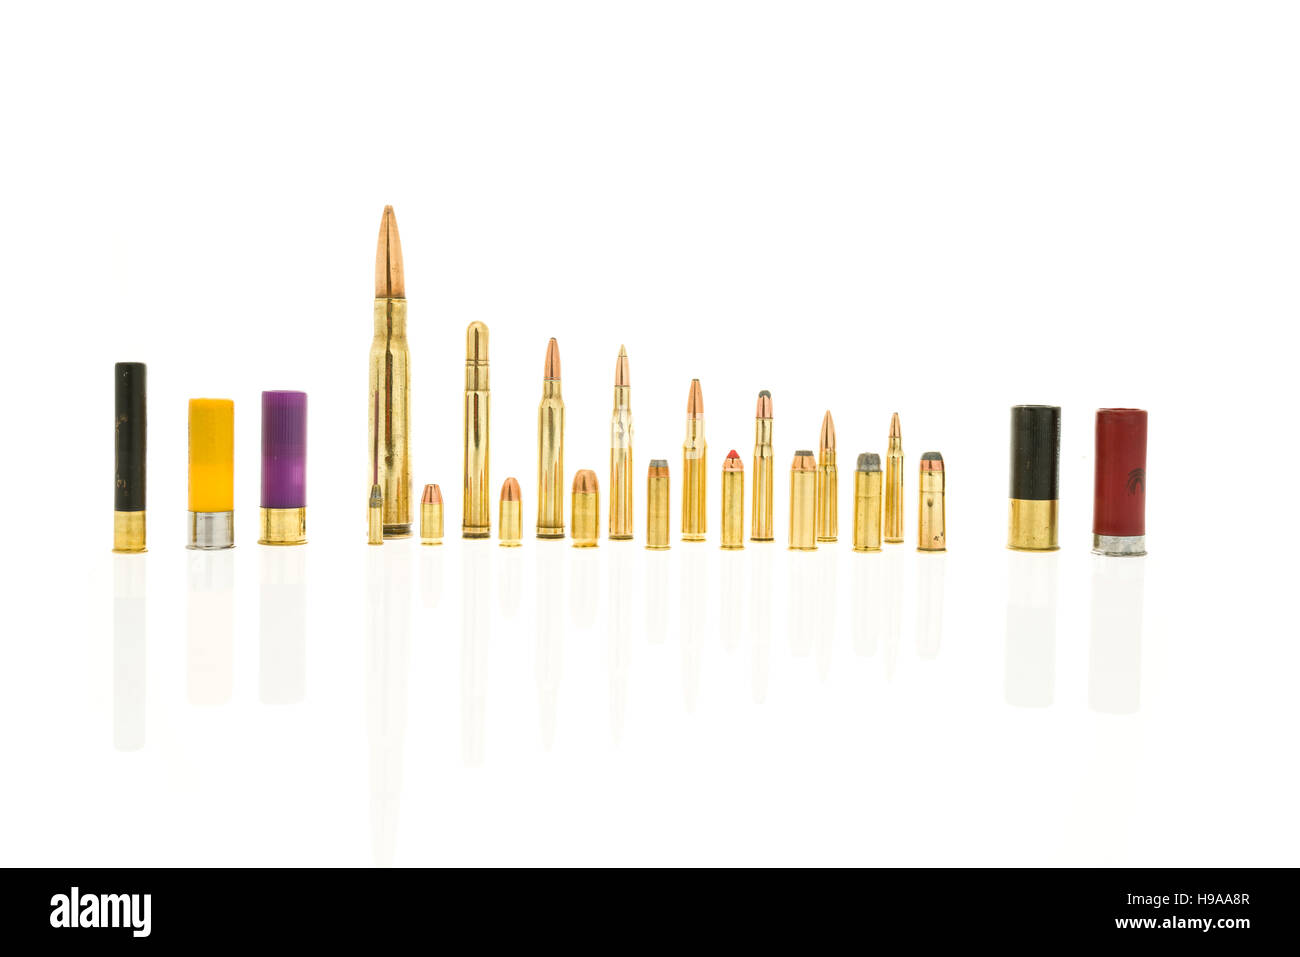 Containing rifle rounds including 50 cal and 5.56, handgun rounds 44 mag and 22 and shotgun rounds 410 and 20 gauge. - Stock Image